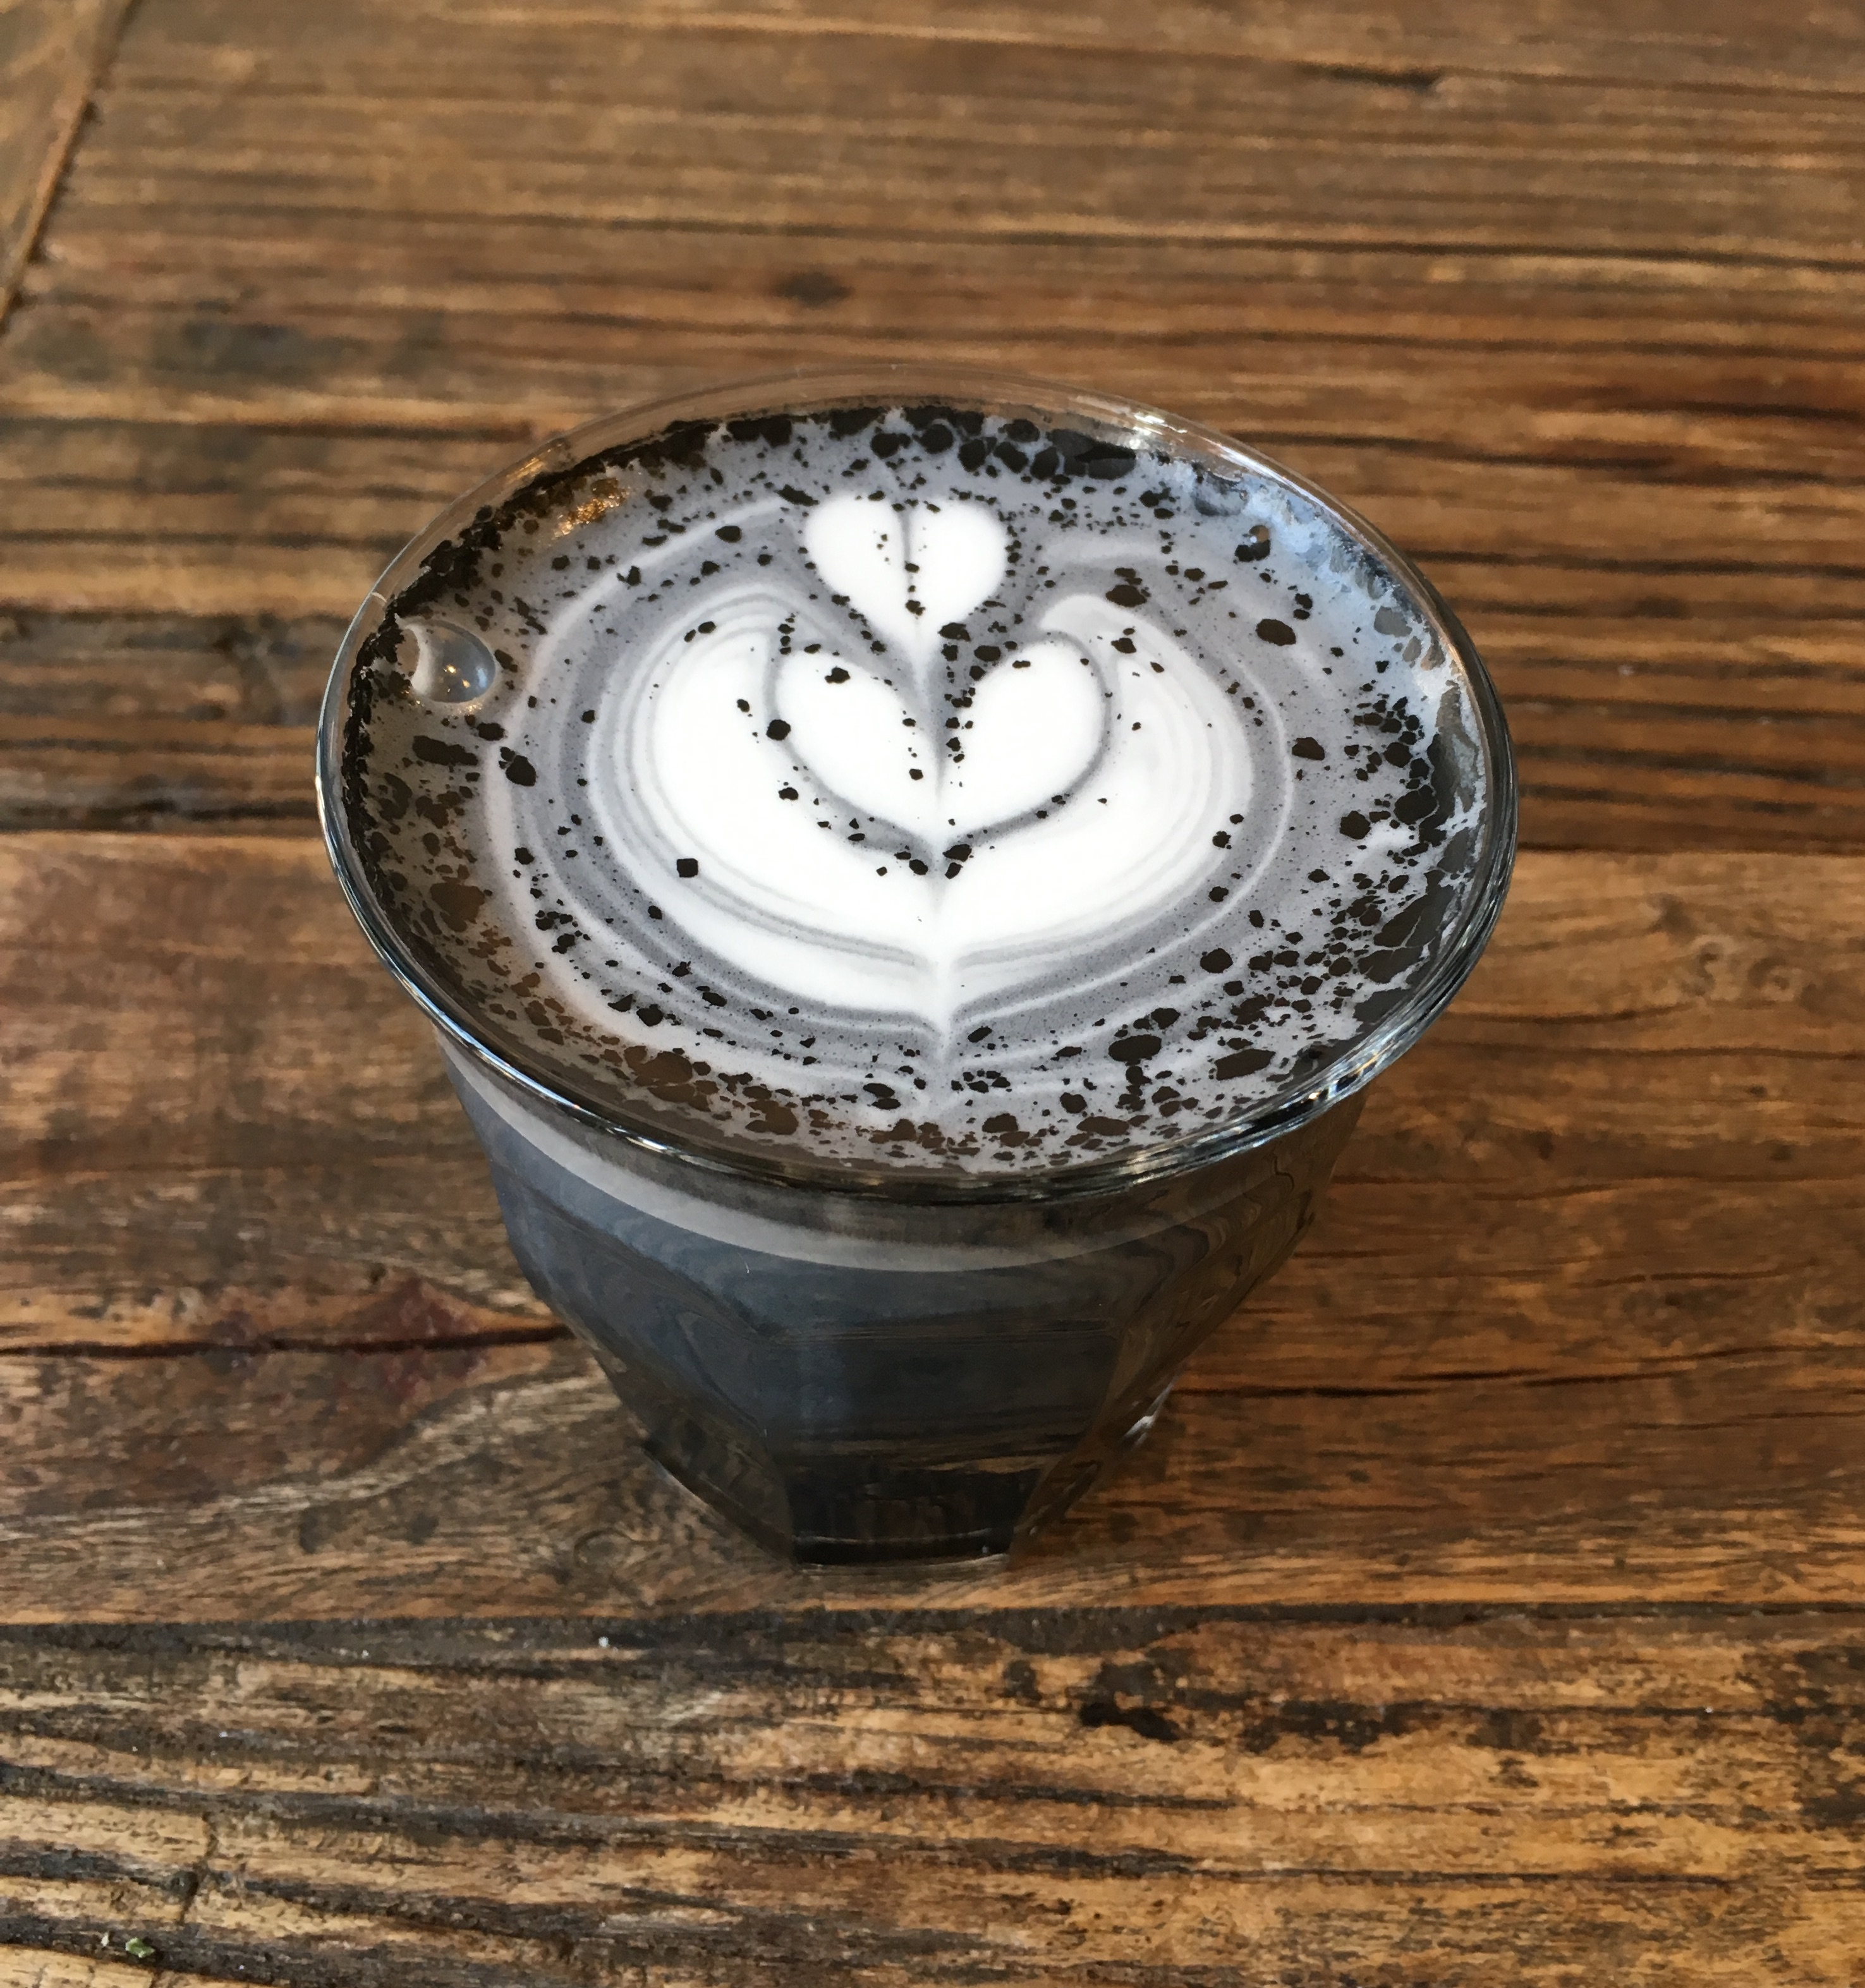 We Tried It: Activated Charcoal Goth Latte